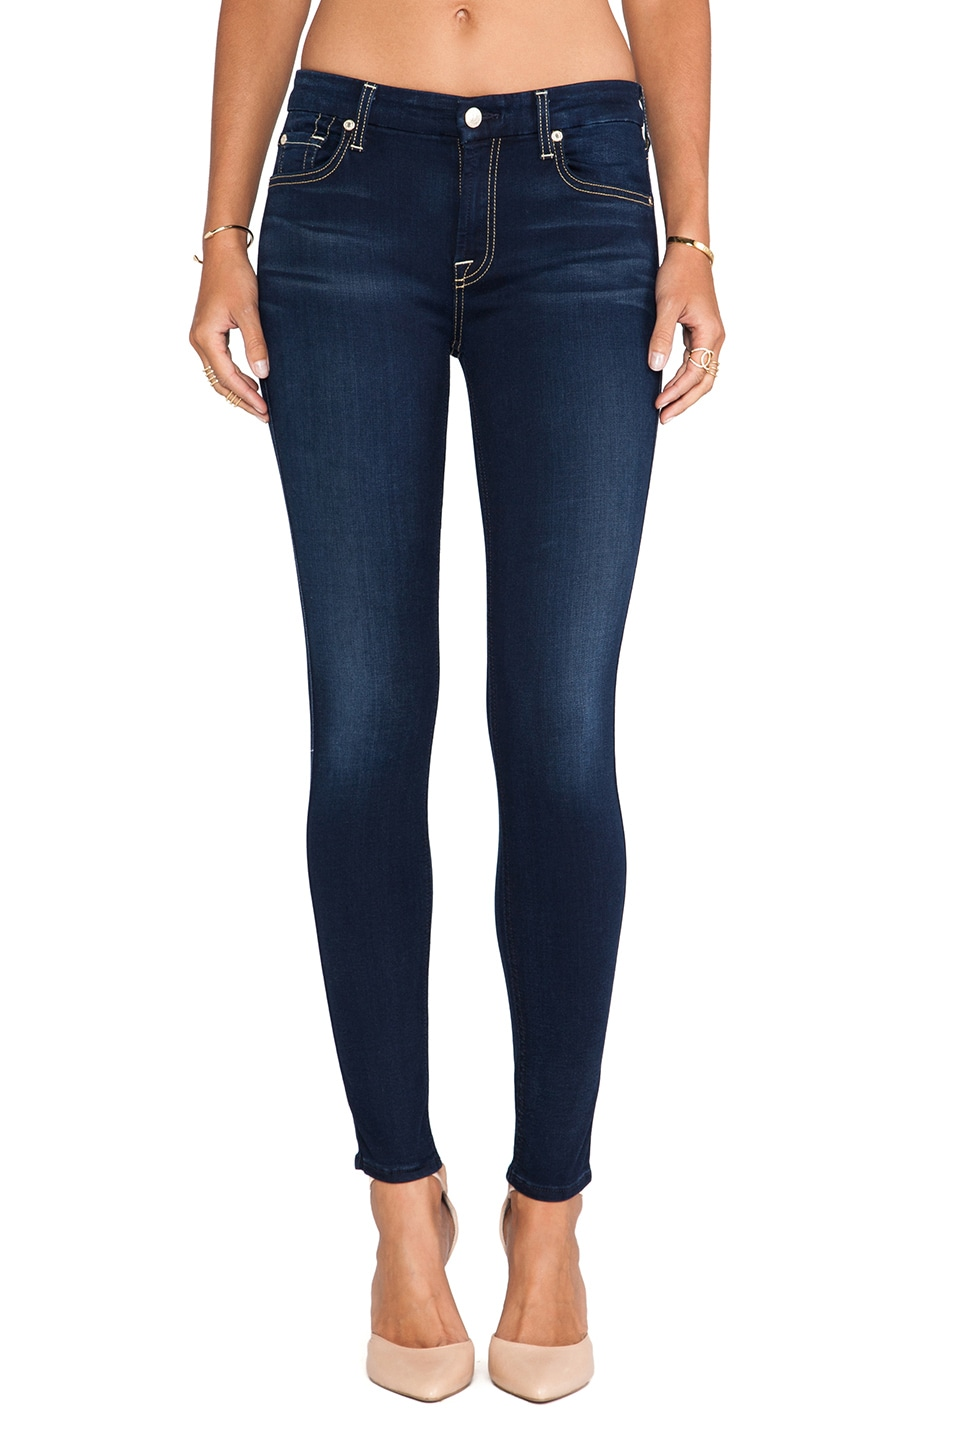 7 For All Mankind Mid Rise Ankle Skinny in Slim Illusion Luxe Night Blue